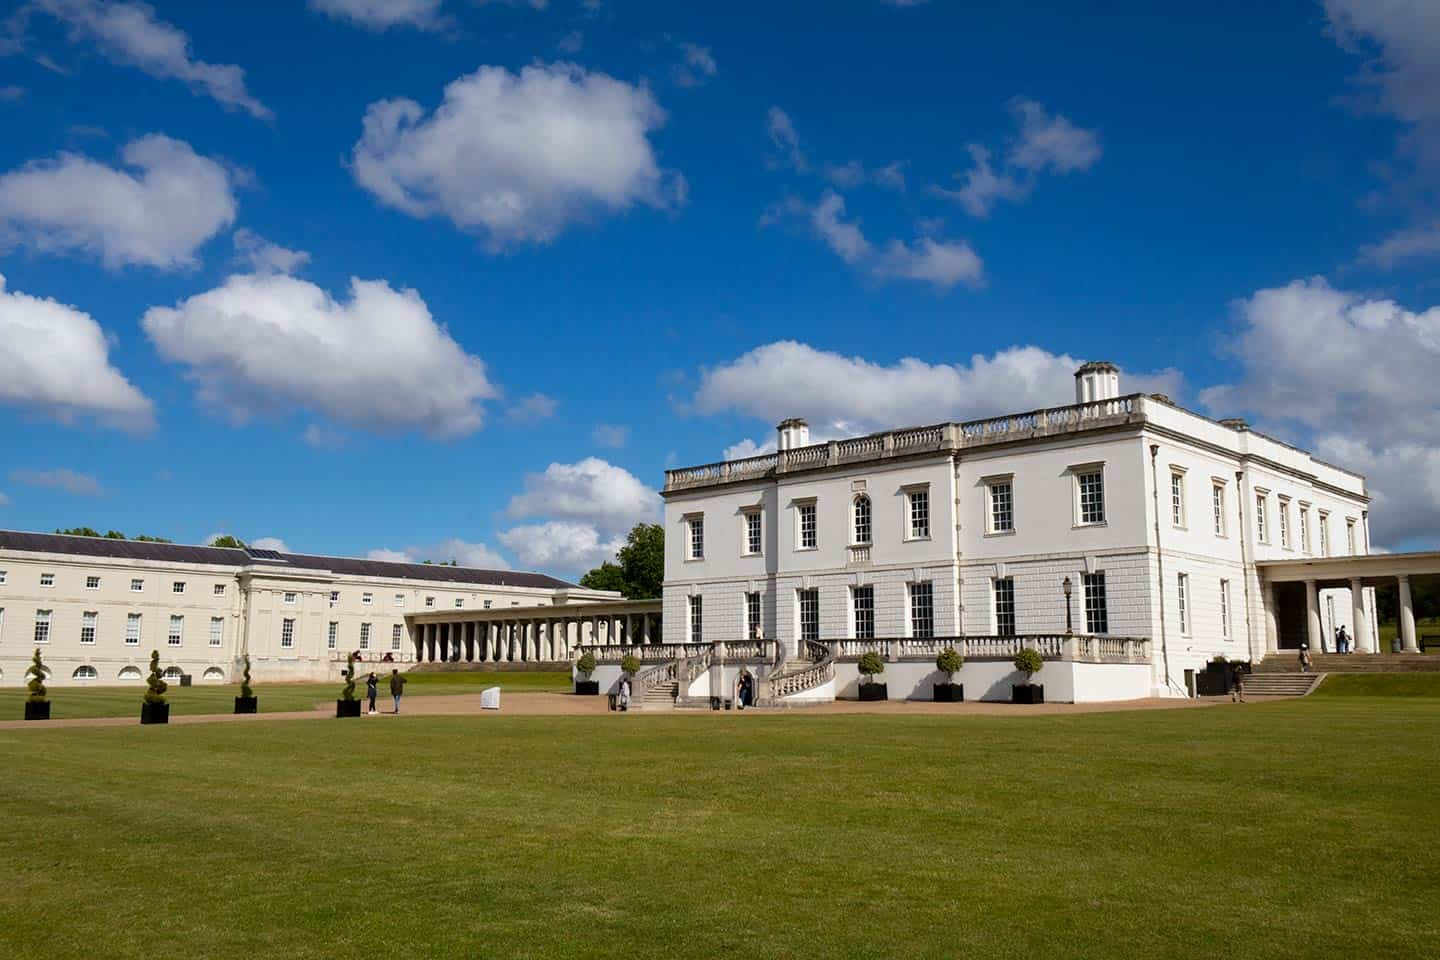 Image of the Queen's House in Greenwich, London